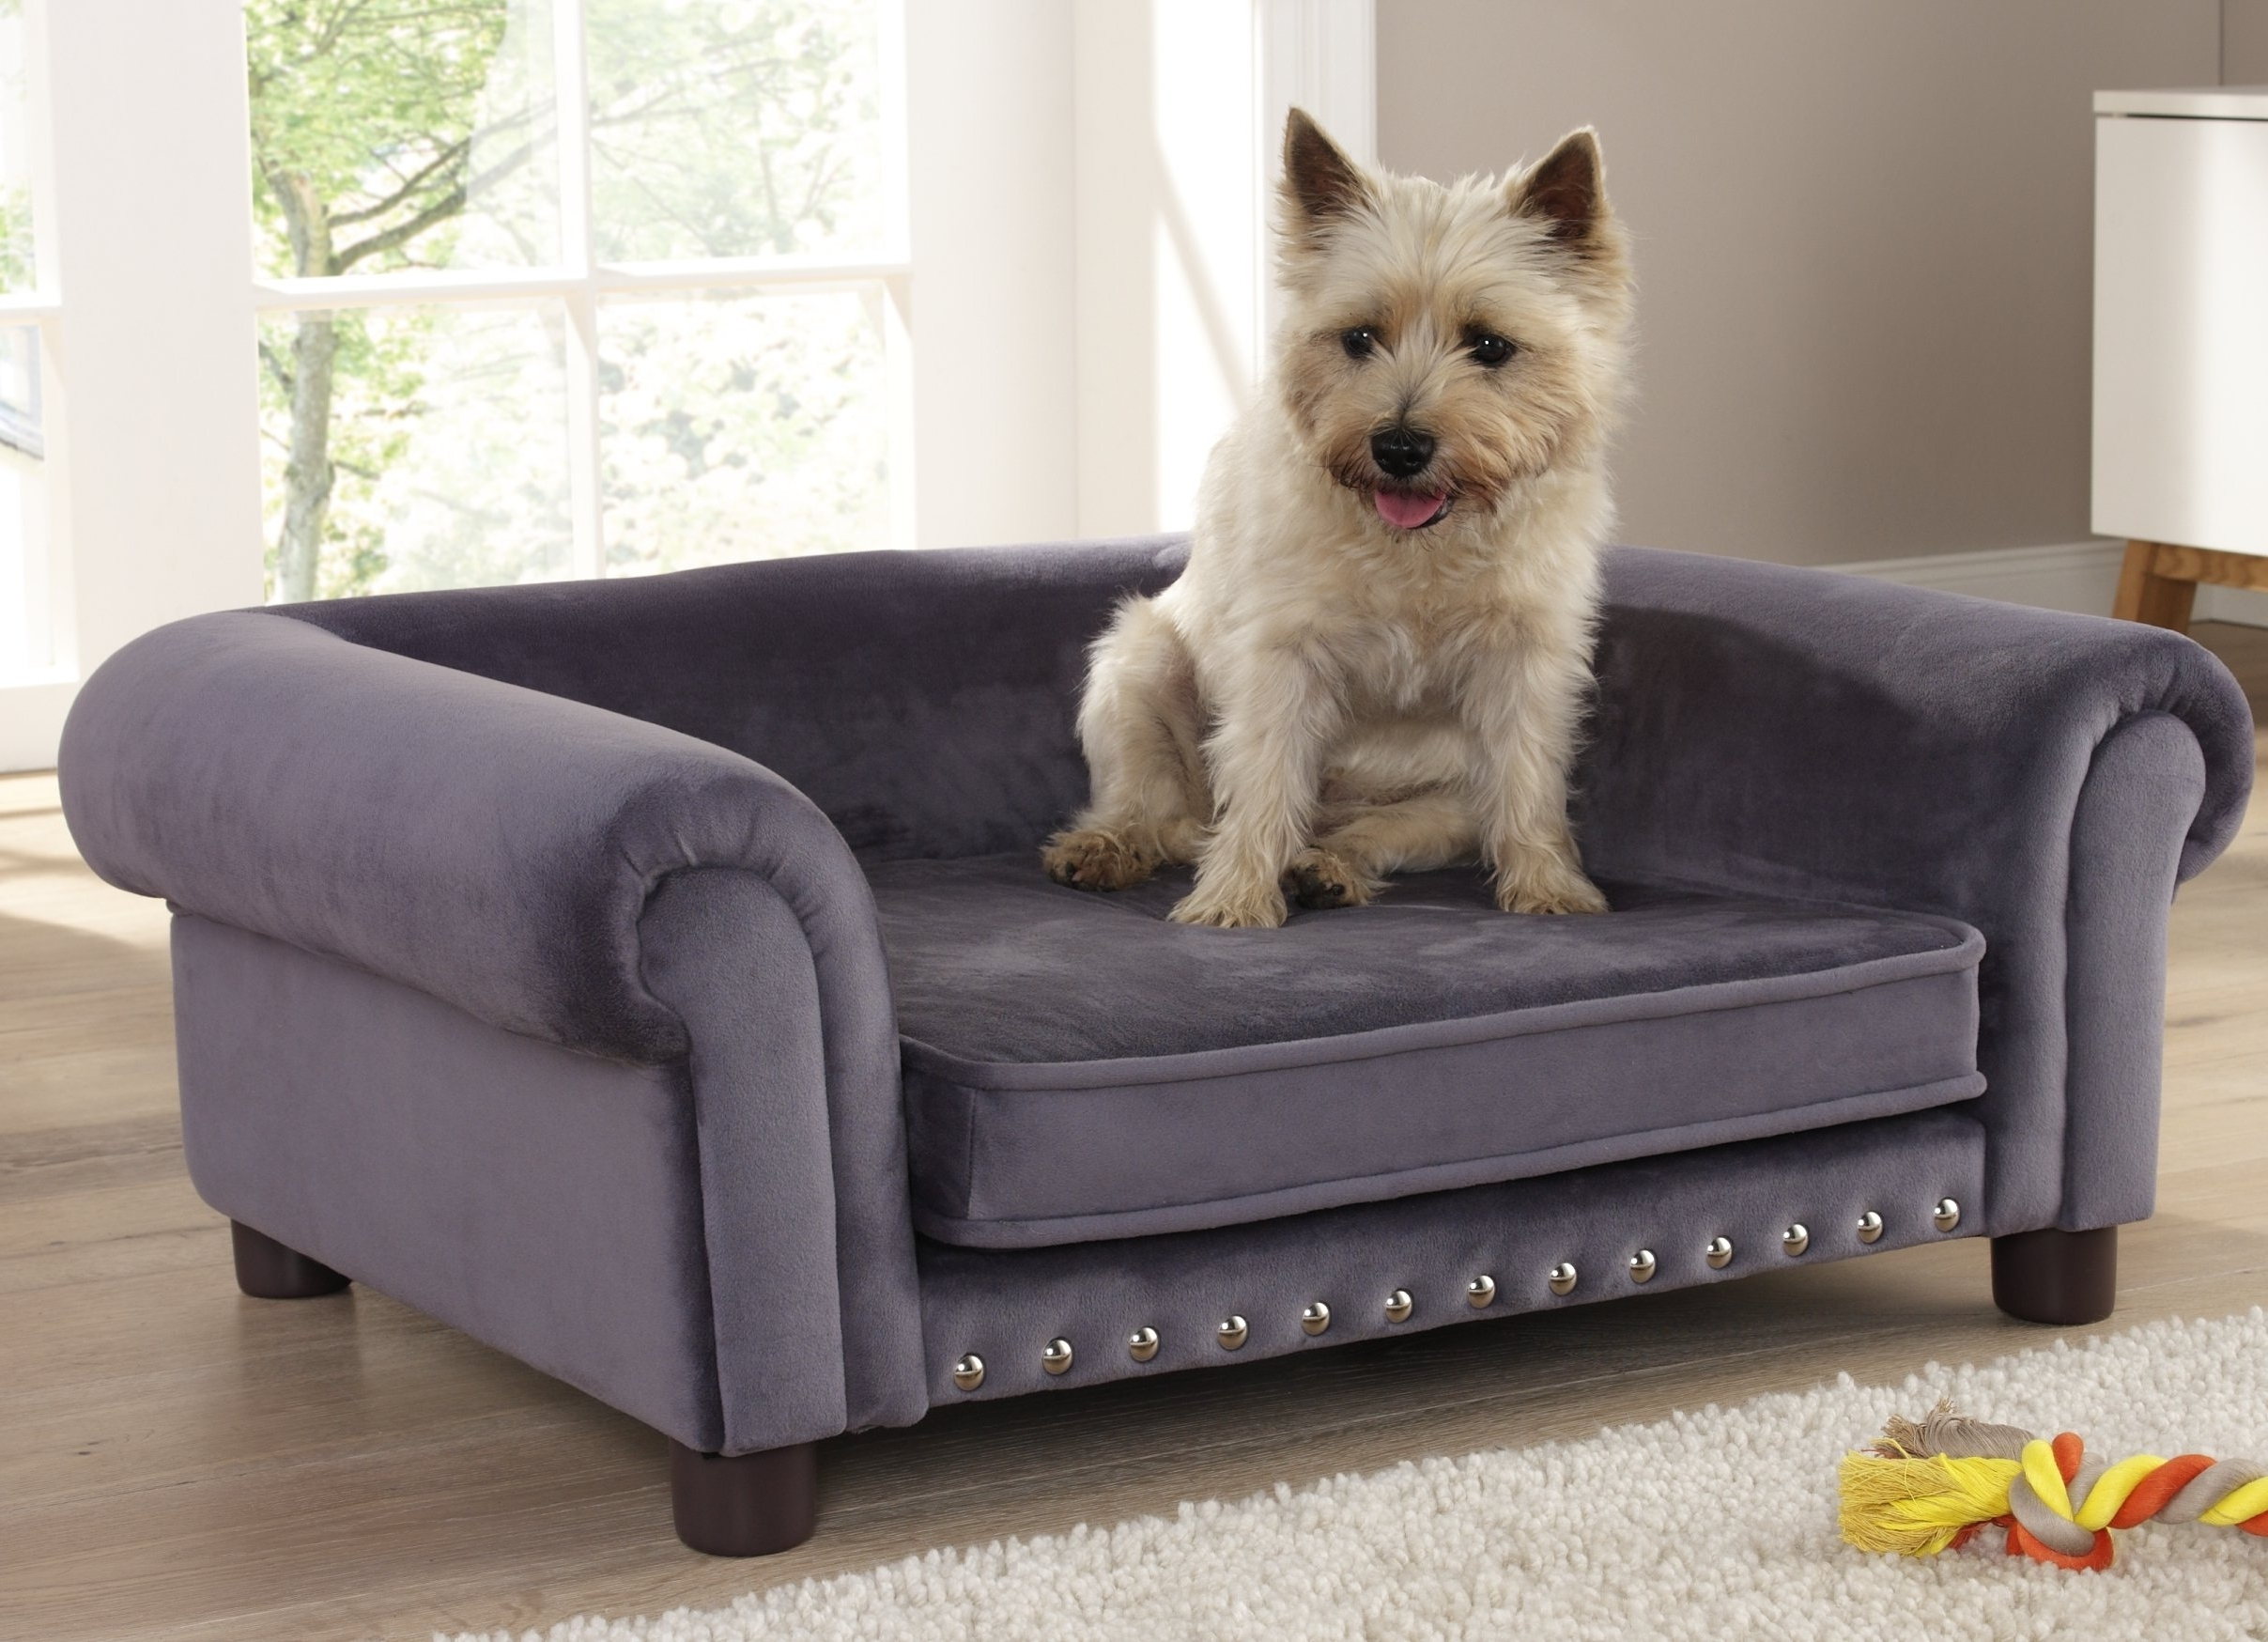 Sofas : Pet Settee Dog Sofas And Chairs Dog Settee Dog Chaise Within Trendy Dog Chaise Lounges (View 14 of 15)